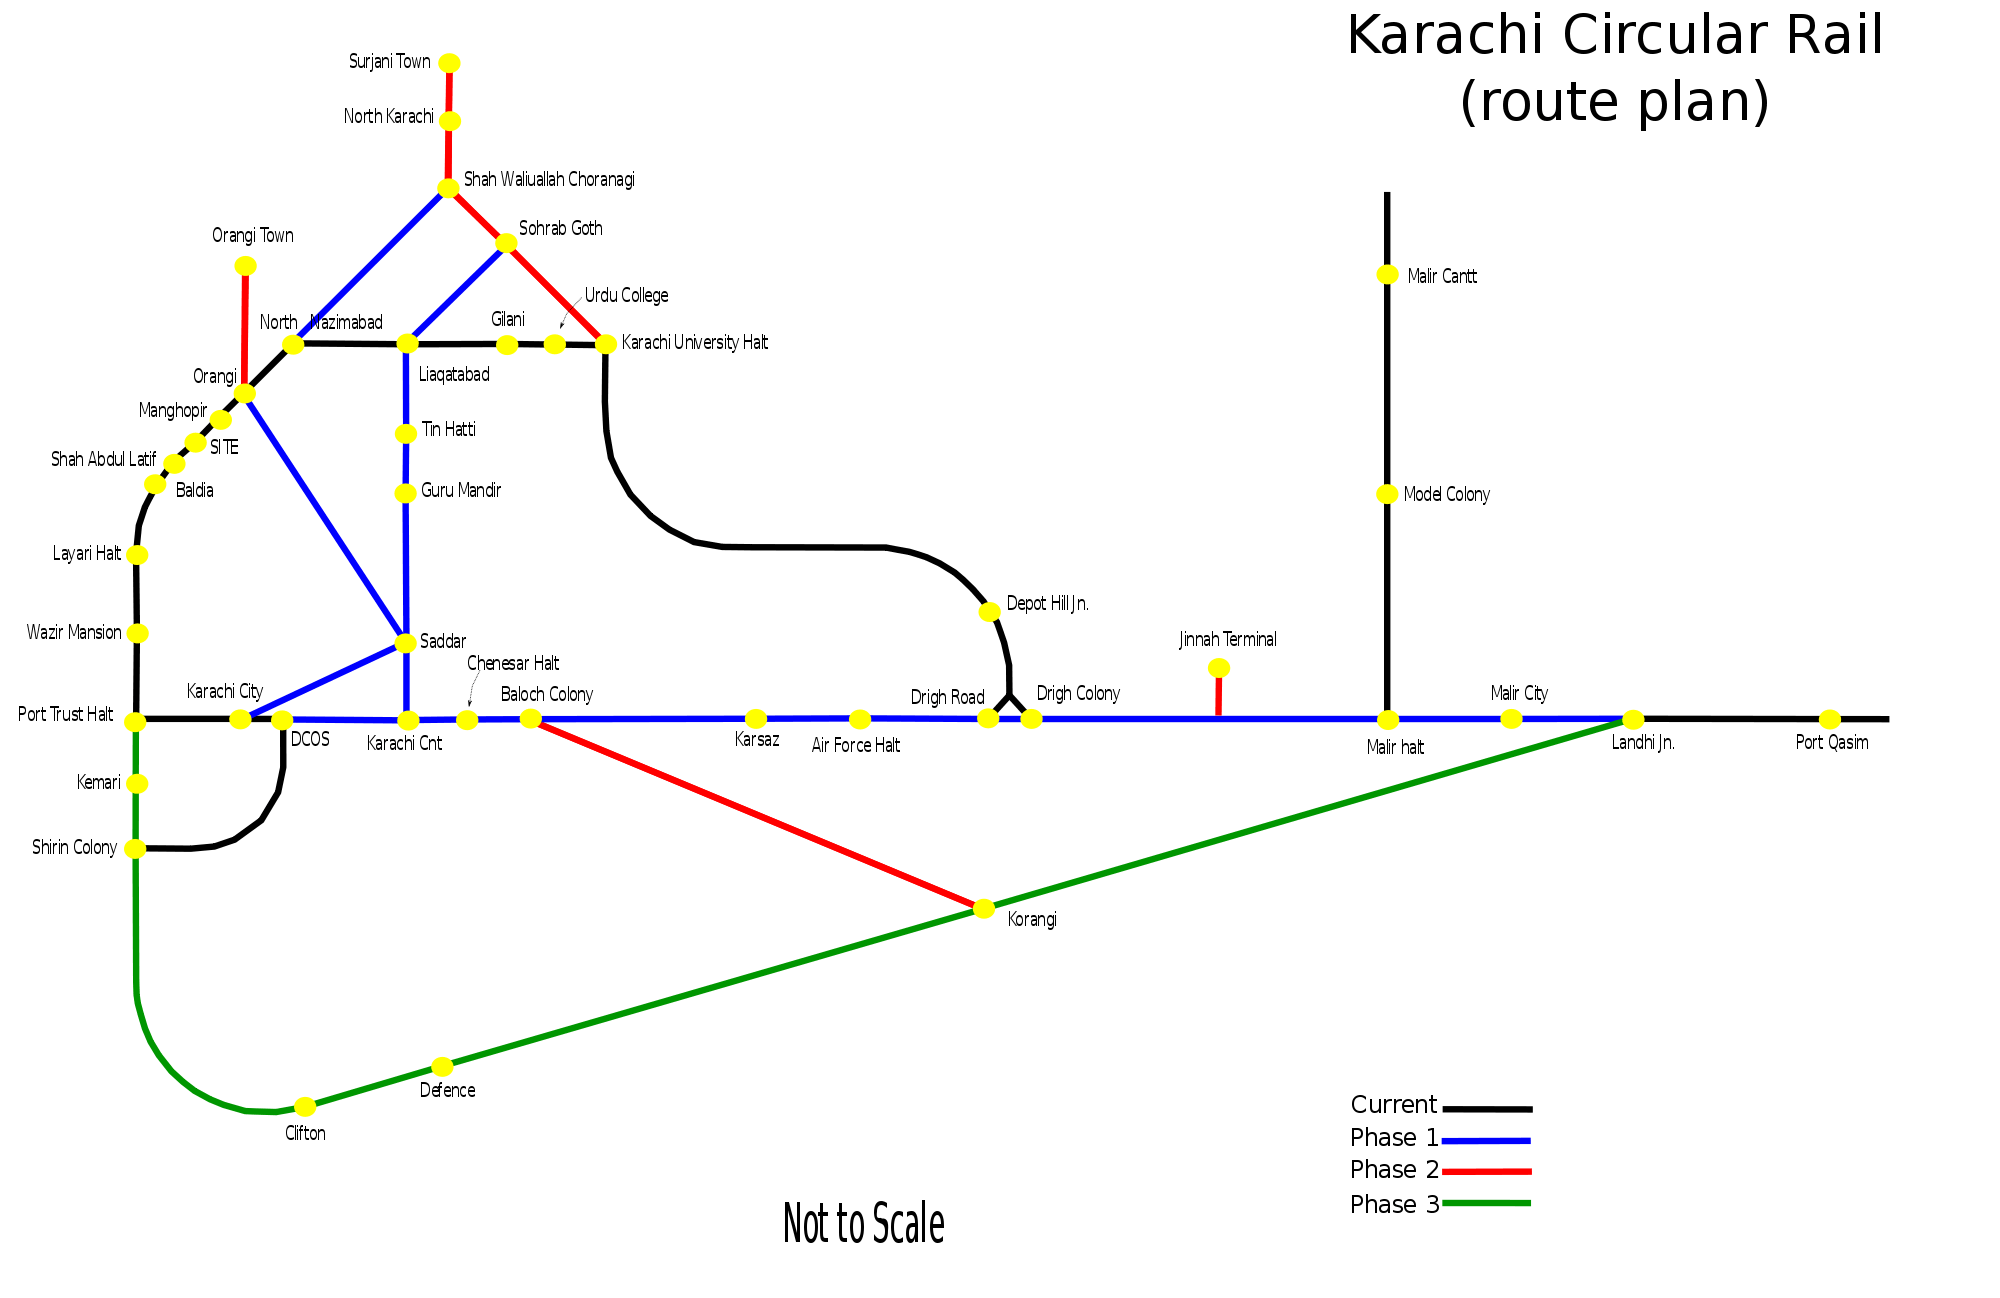 Karachi Circular Rail Route large map